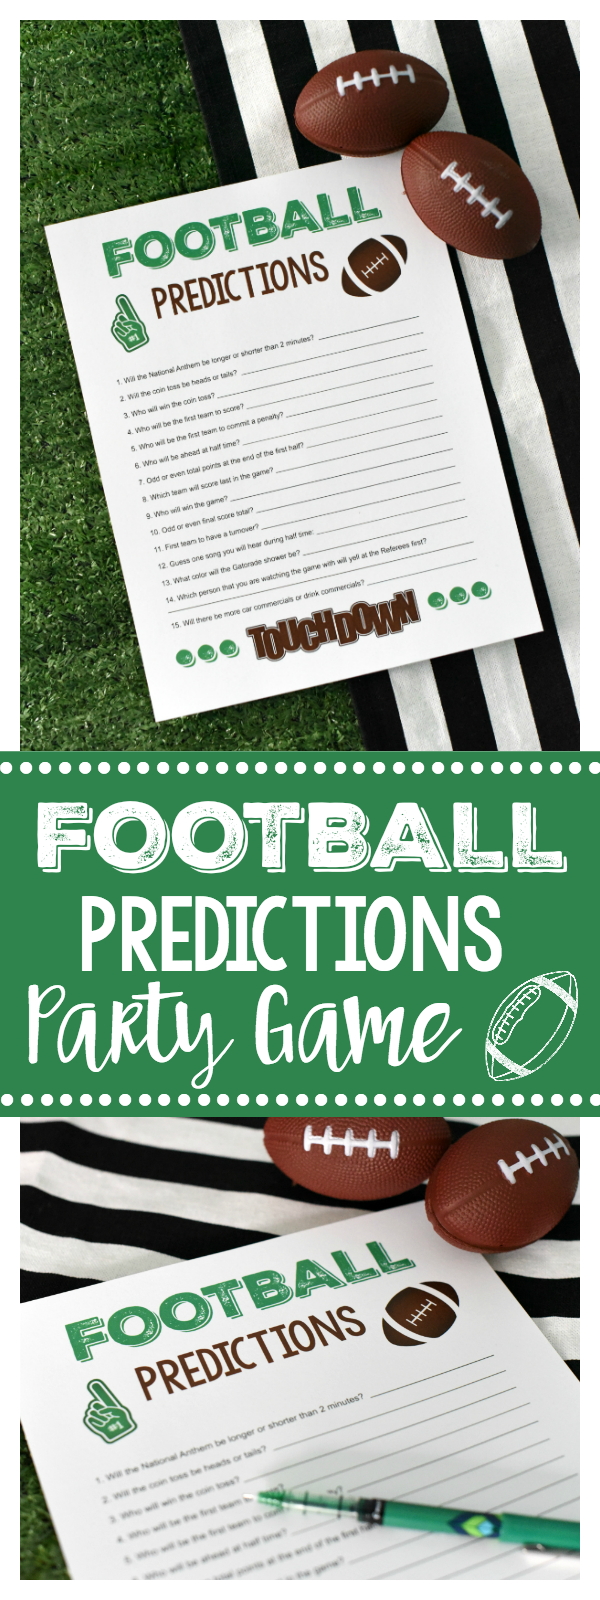 Super Bowl Party Games: Football Predictions (Like Prop Bets) a Great Game for the Whole Family